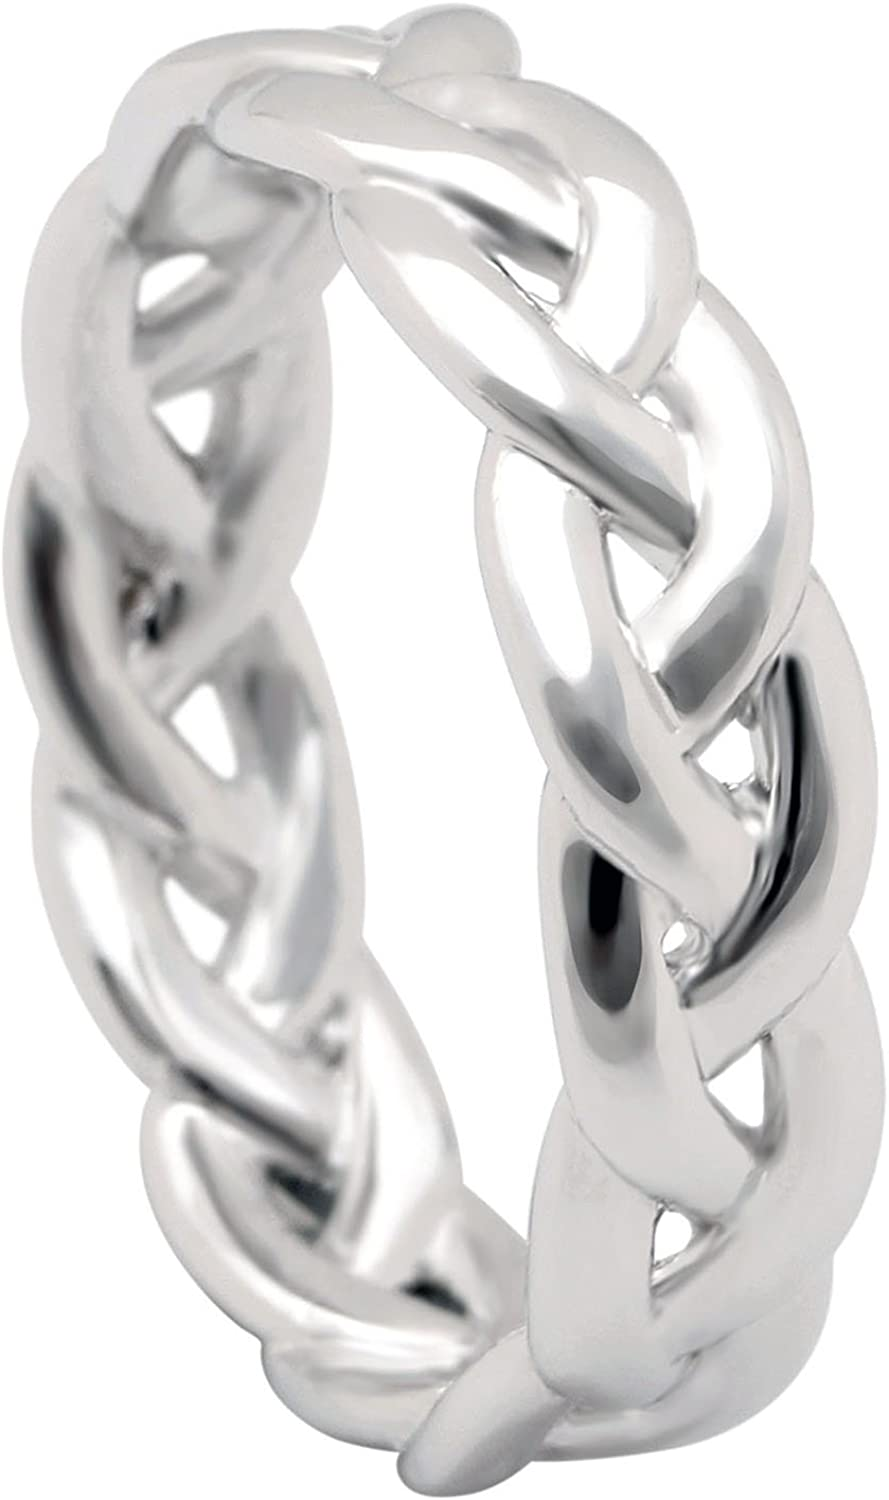 Ginger Lyne Collection Belinda Infinity Twisted Anniversary Wedding Band Ring